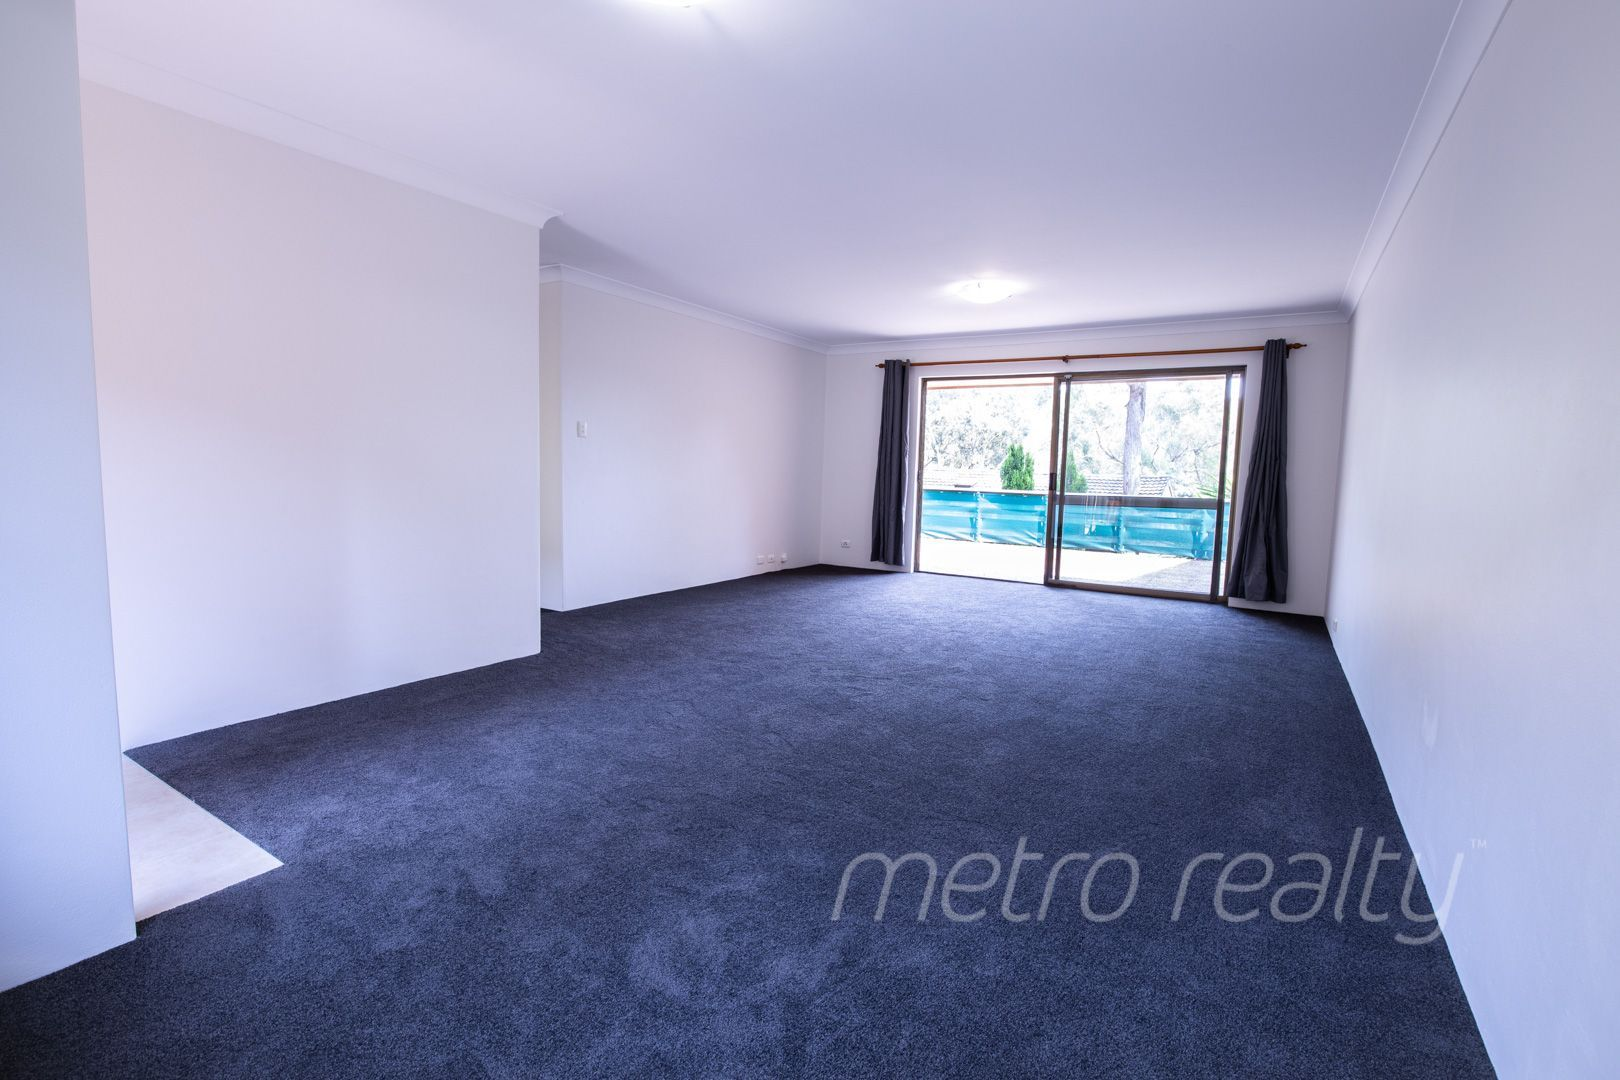 13/4 Tuckwell Place, Macquarie Park NSW 2113, Image 1